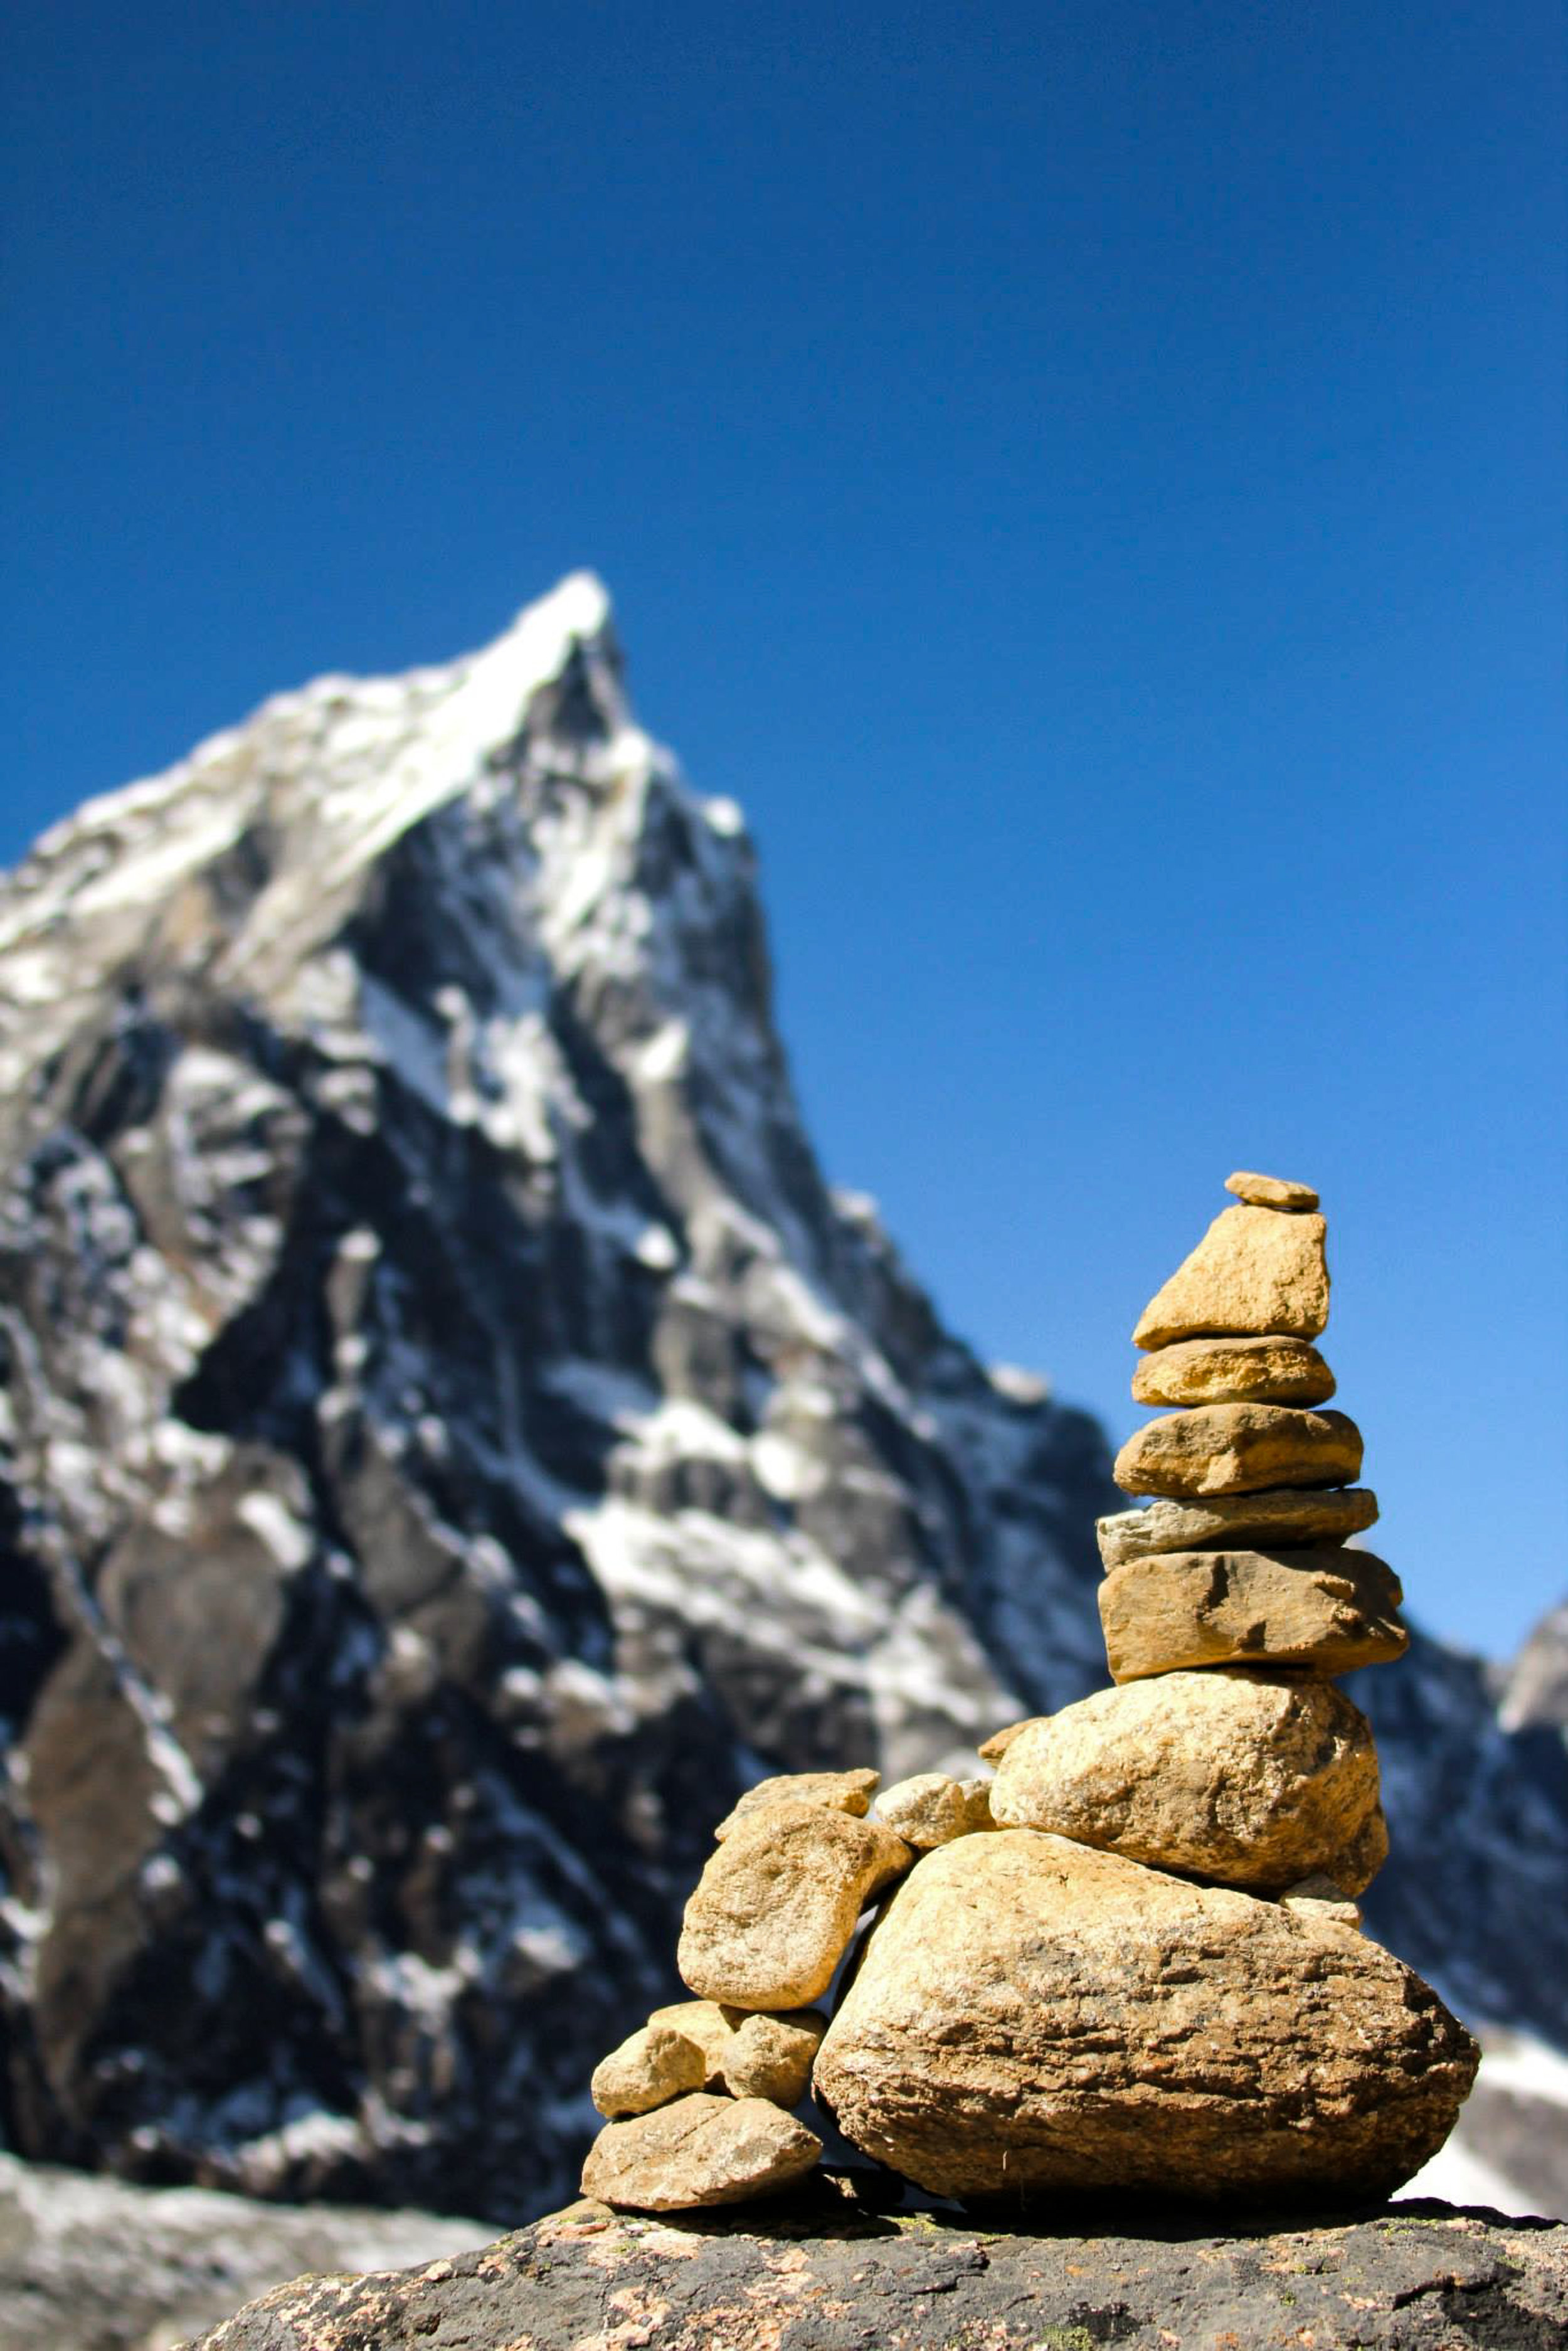 A stone cairn mimics the Himalayas on the trek to Everest Base Camp, Nepal